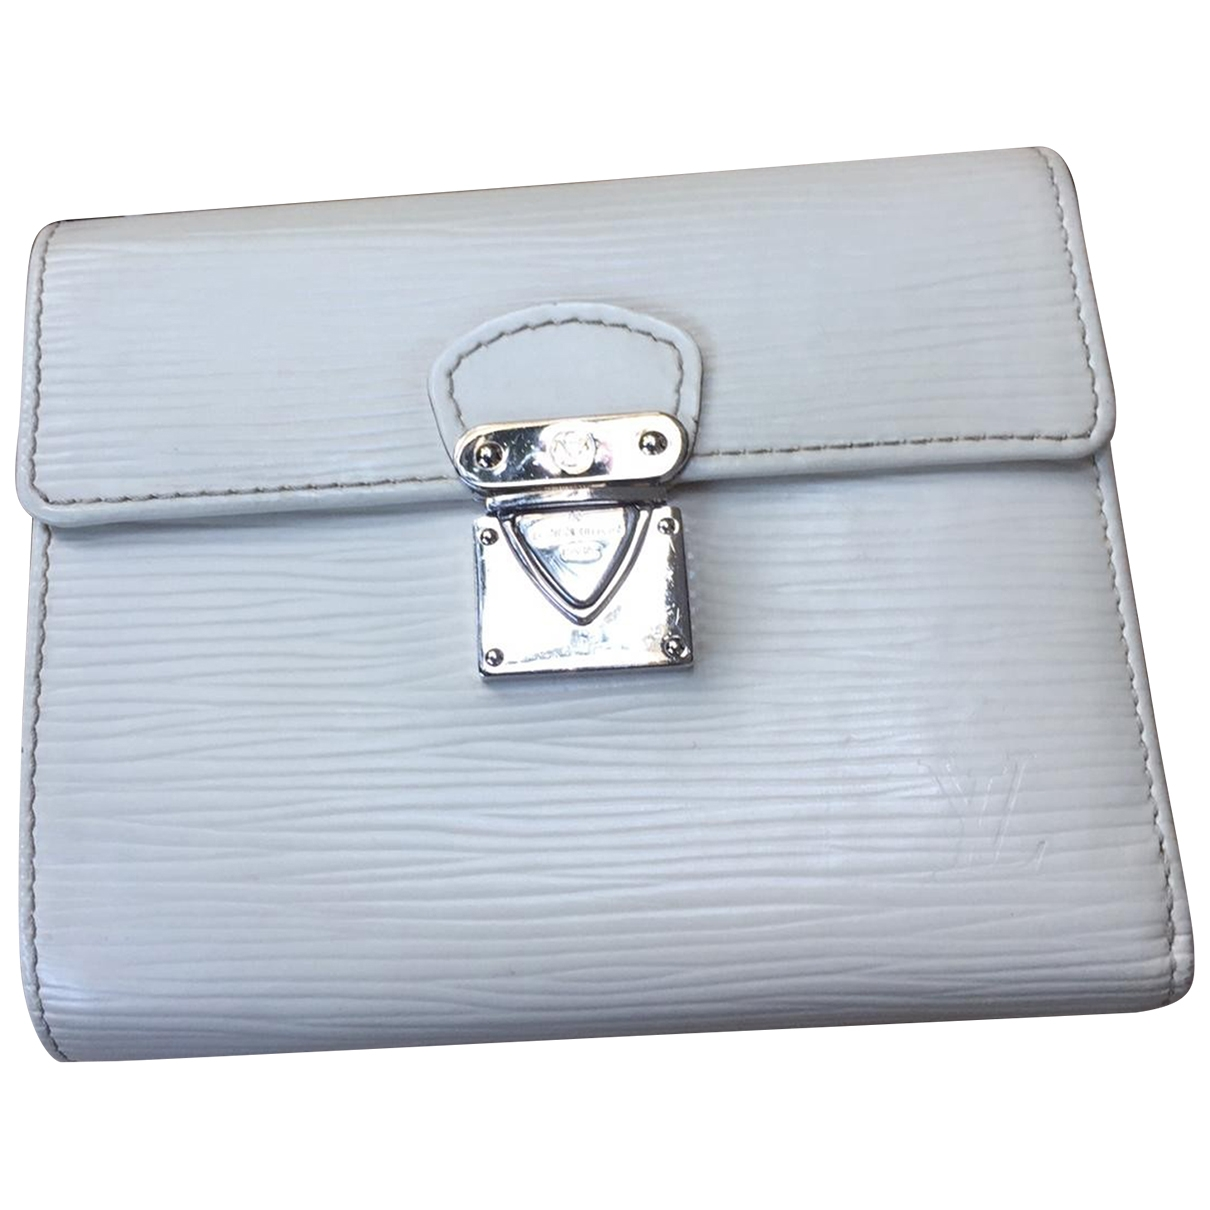 Louis Vuitton Metis White Leather wallet for Women \N